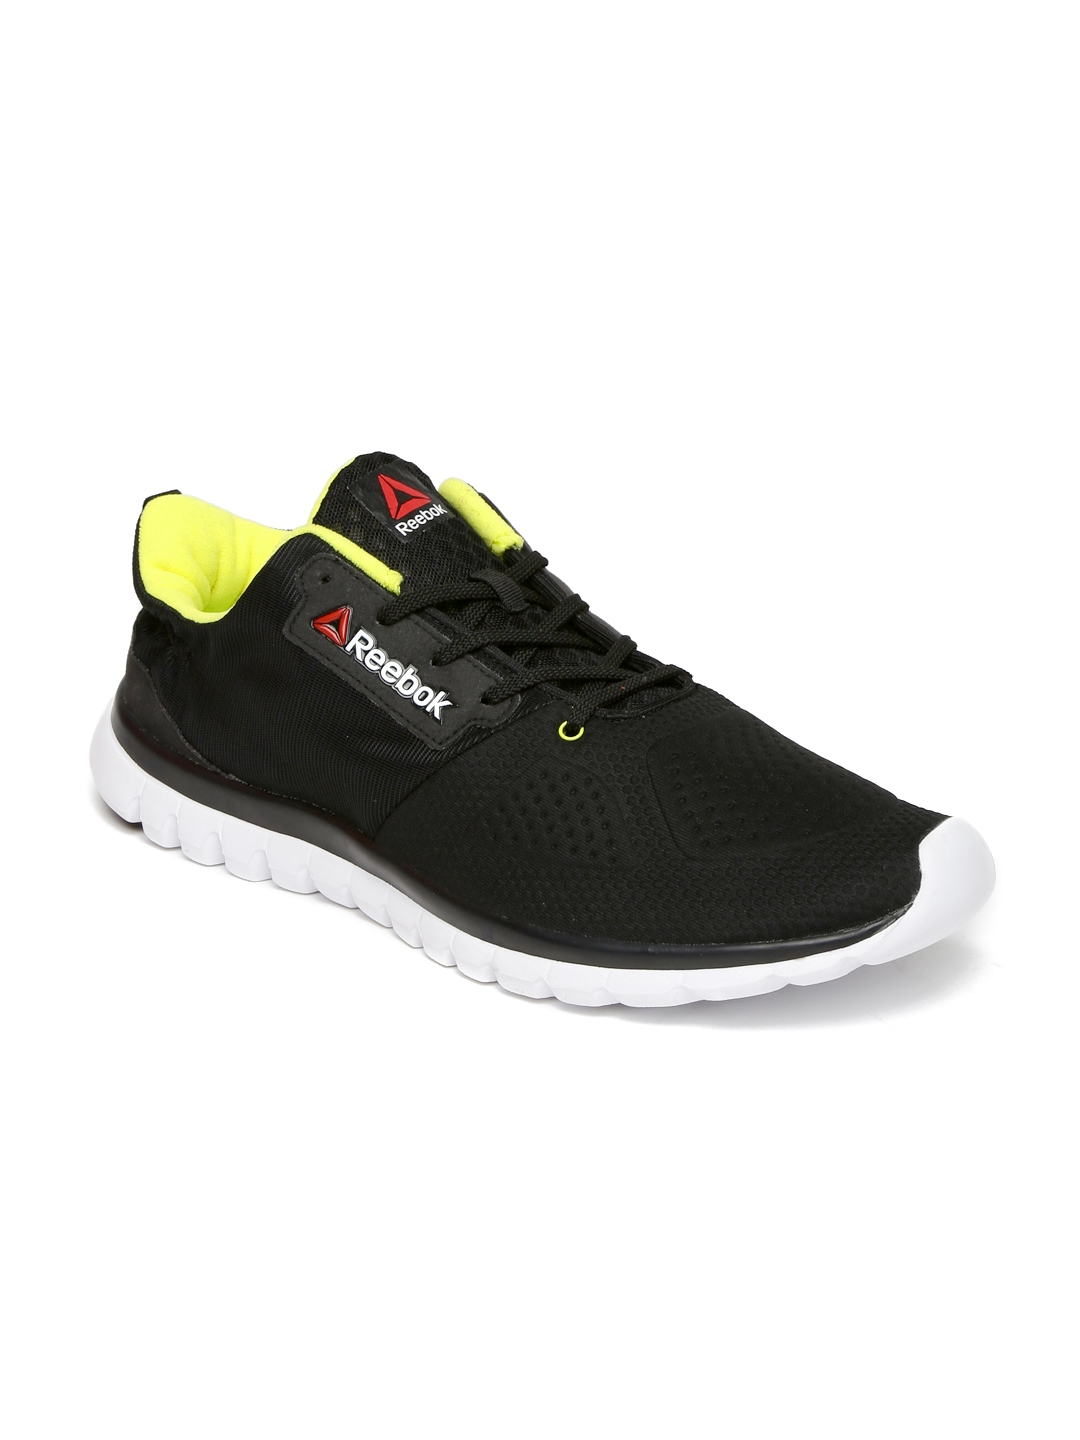 0ff569e939c Buy Reebok Men Black Sublite Aim 2.0 Running Shoes - Sports Shoes ...